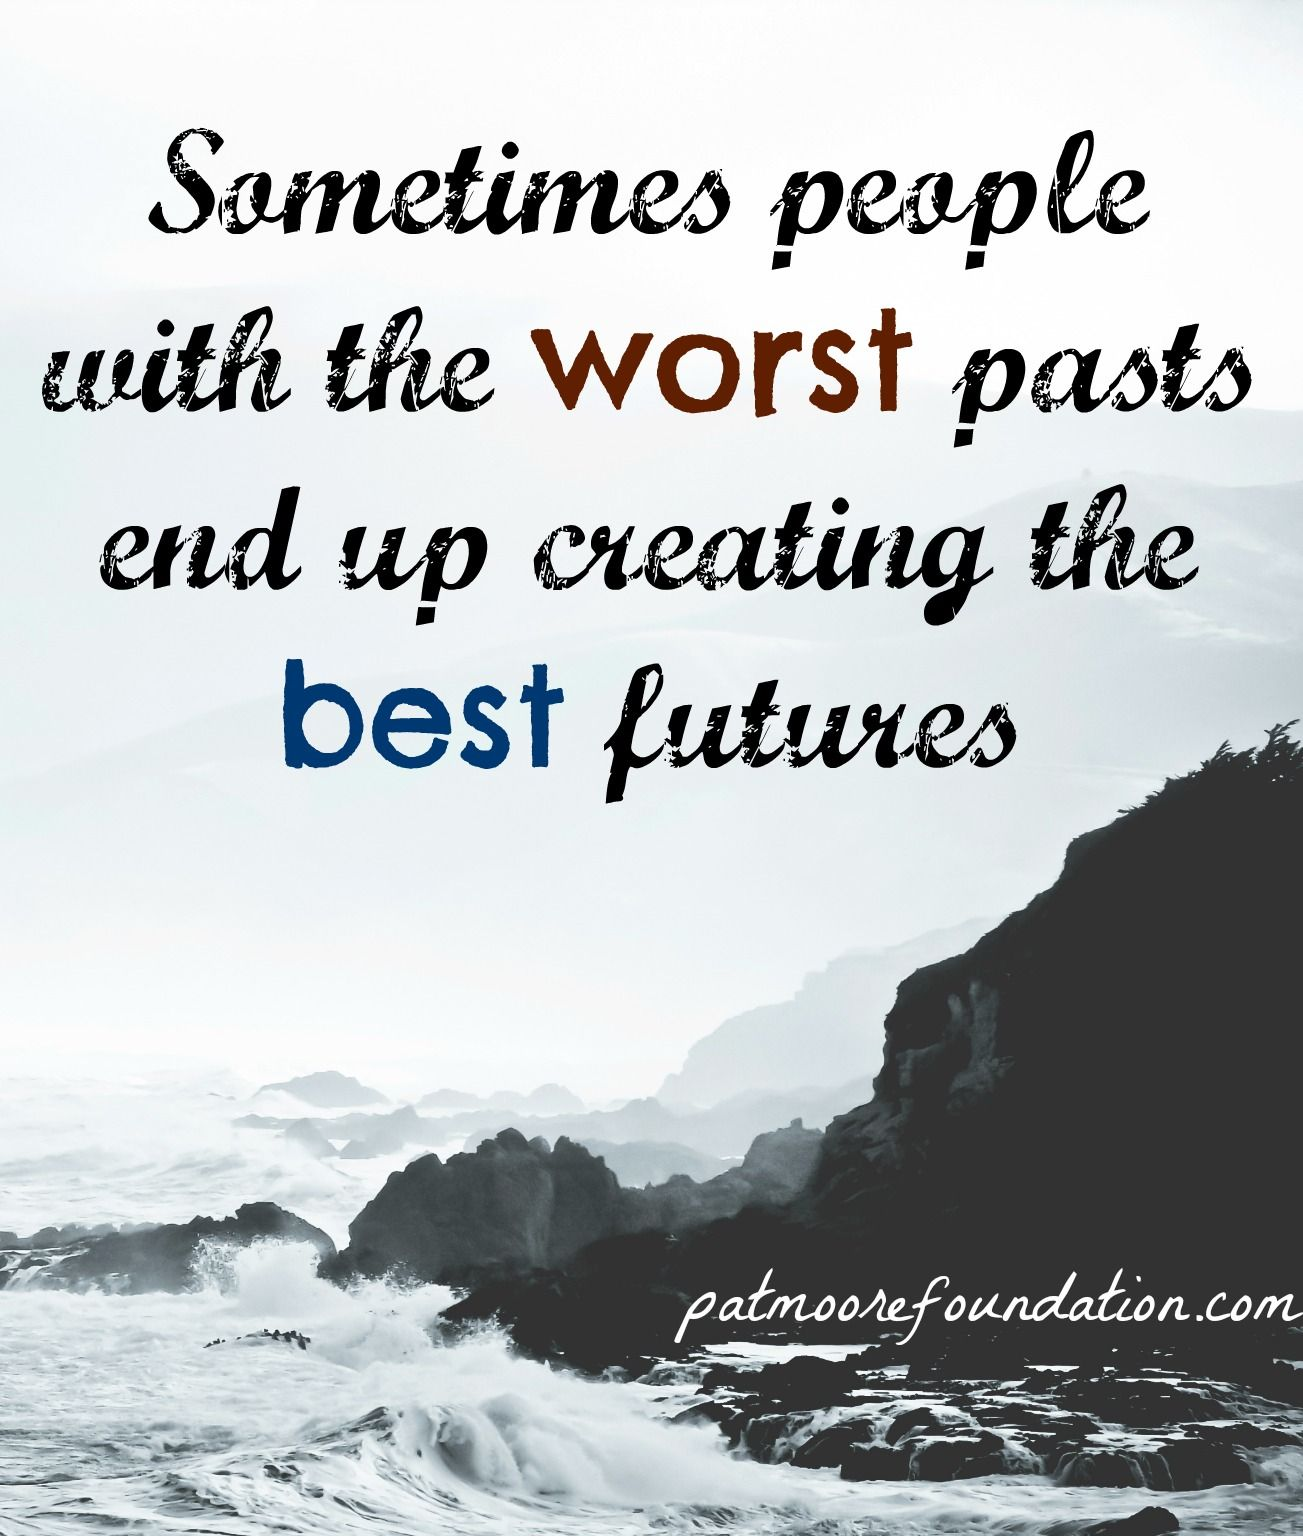 Addiction Quotes: Sometimes People With The Worst Pasts End Up Creating The